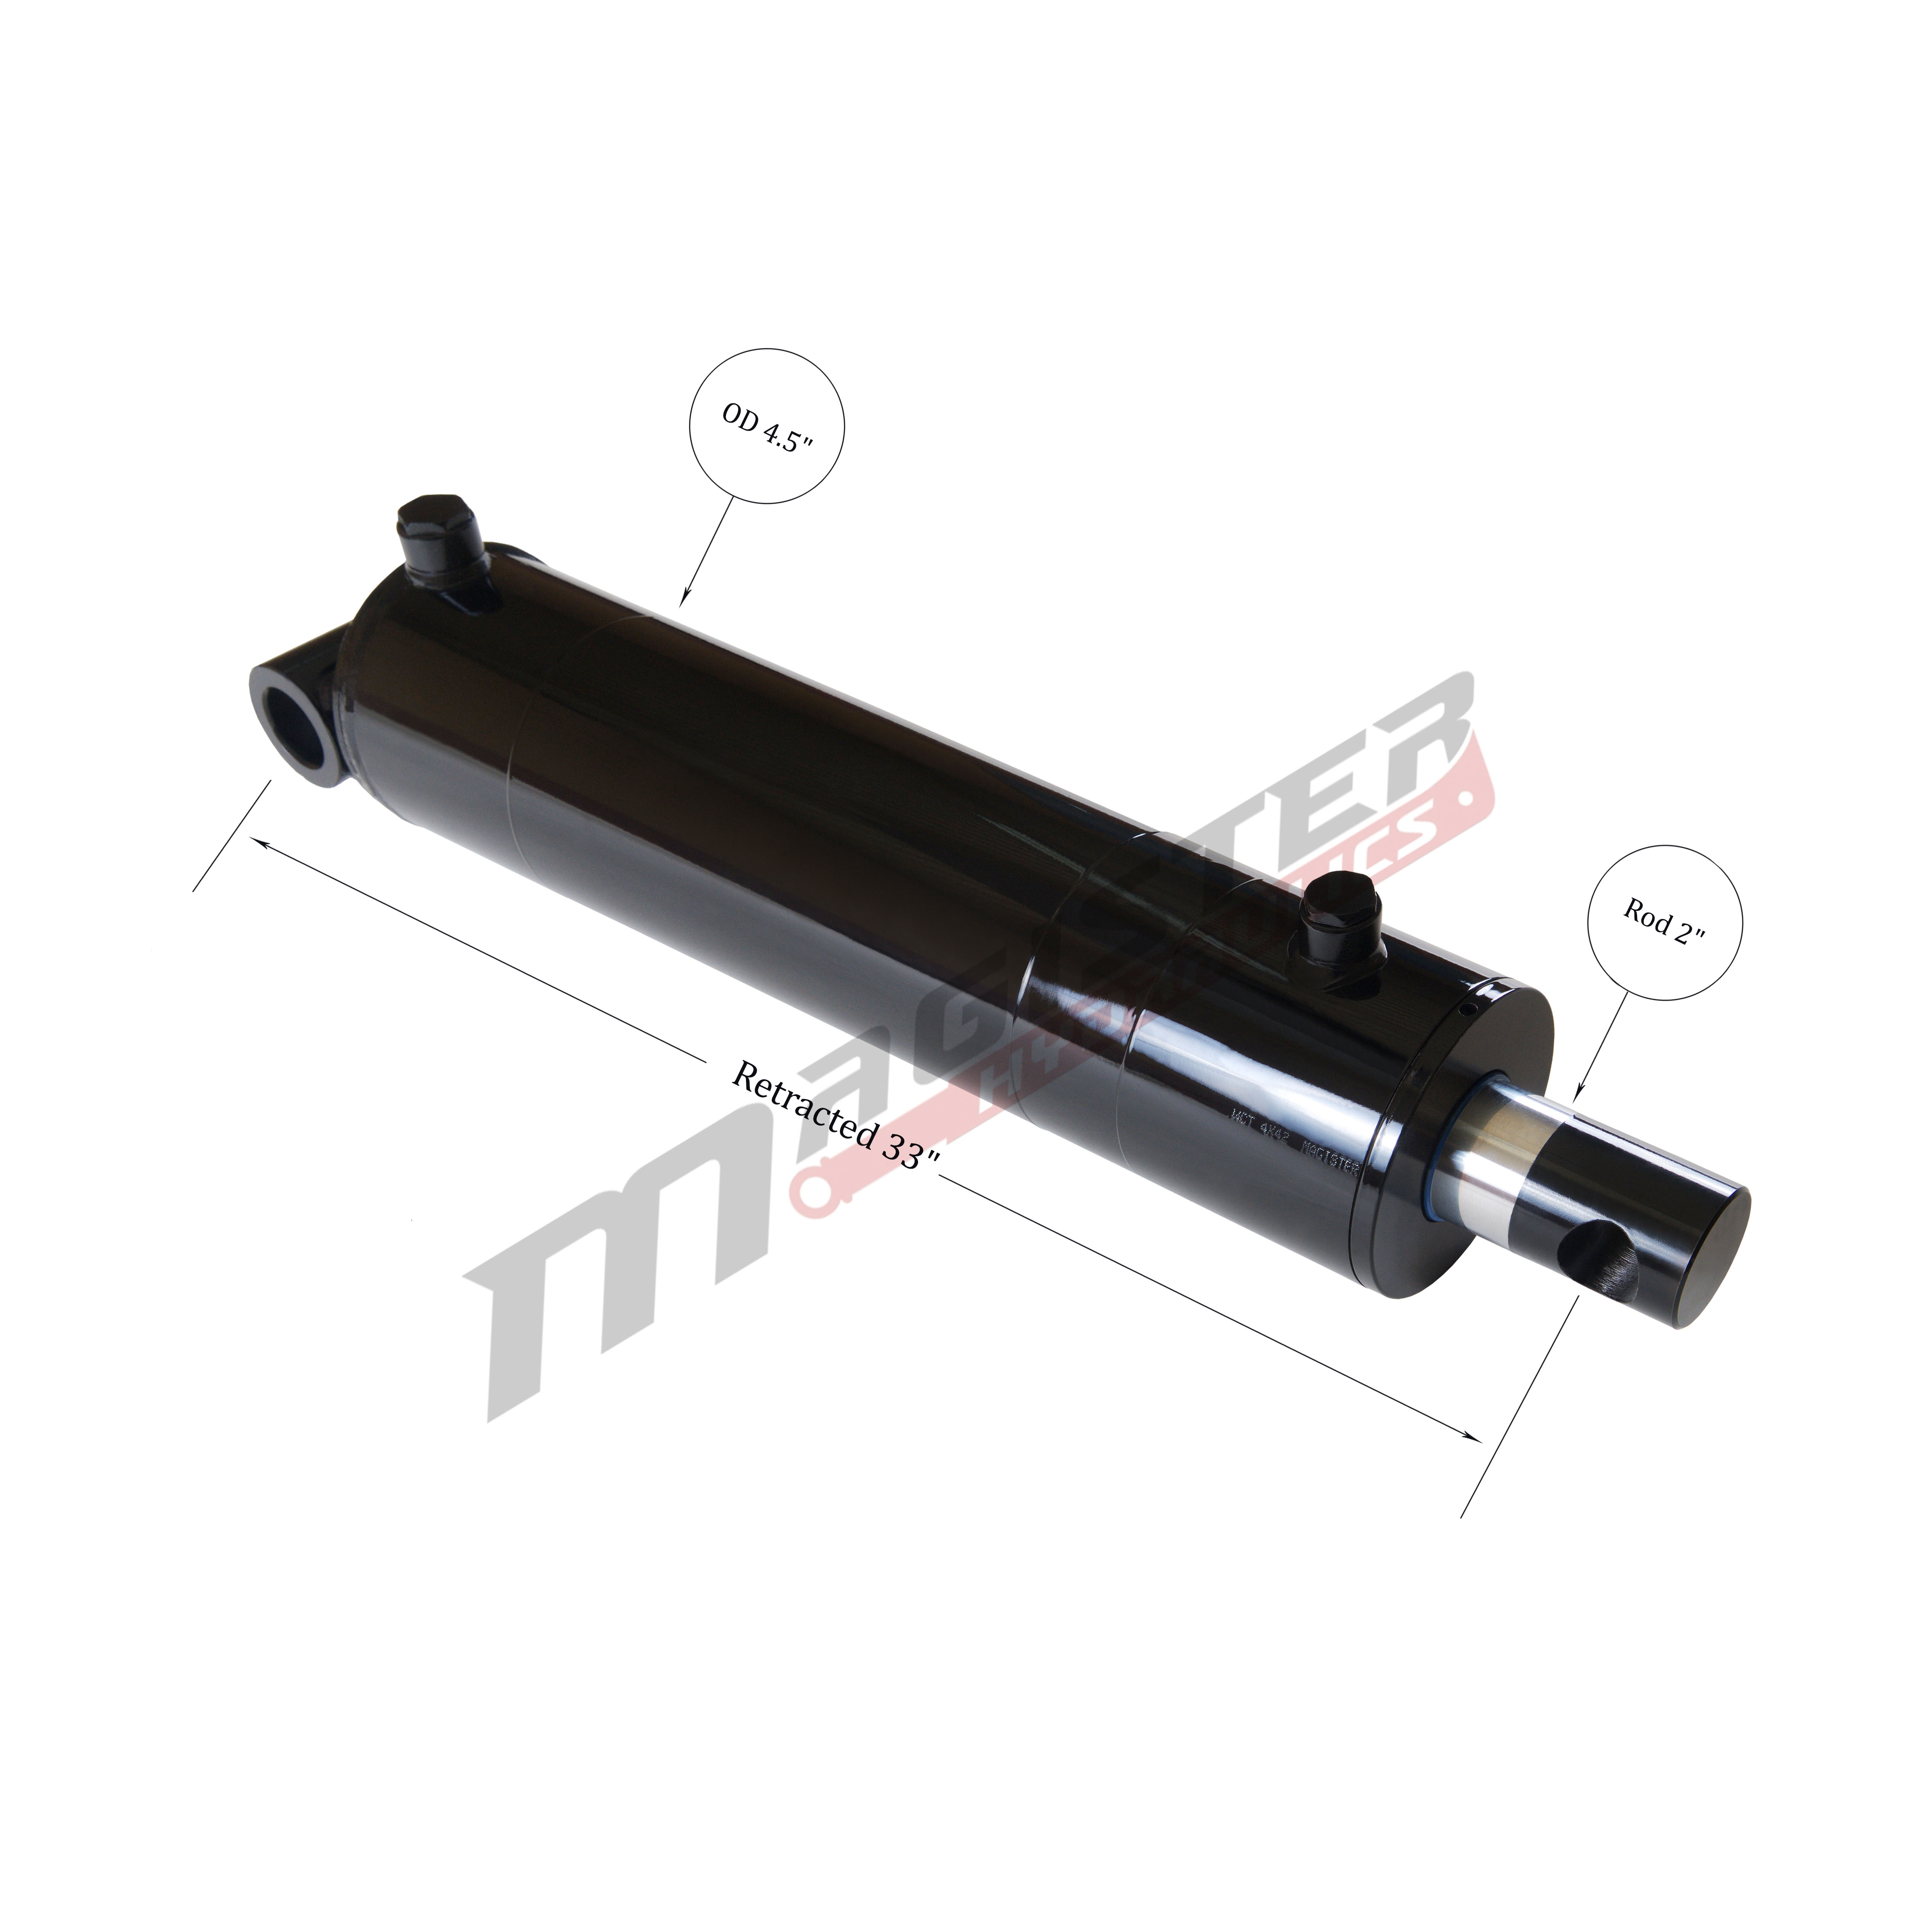 4 bore x 24 stroke hydraulic cylinder, welded pin eye double acting cylinder | Magister Hydraulics